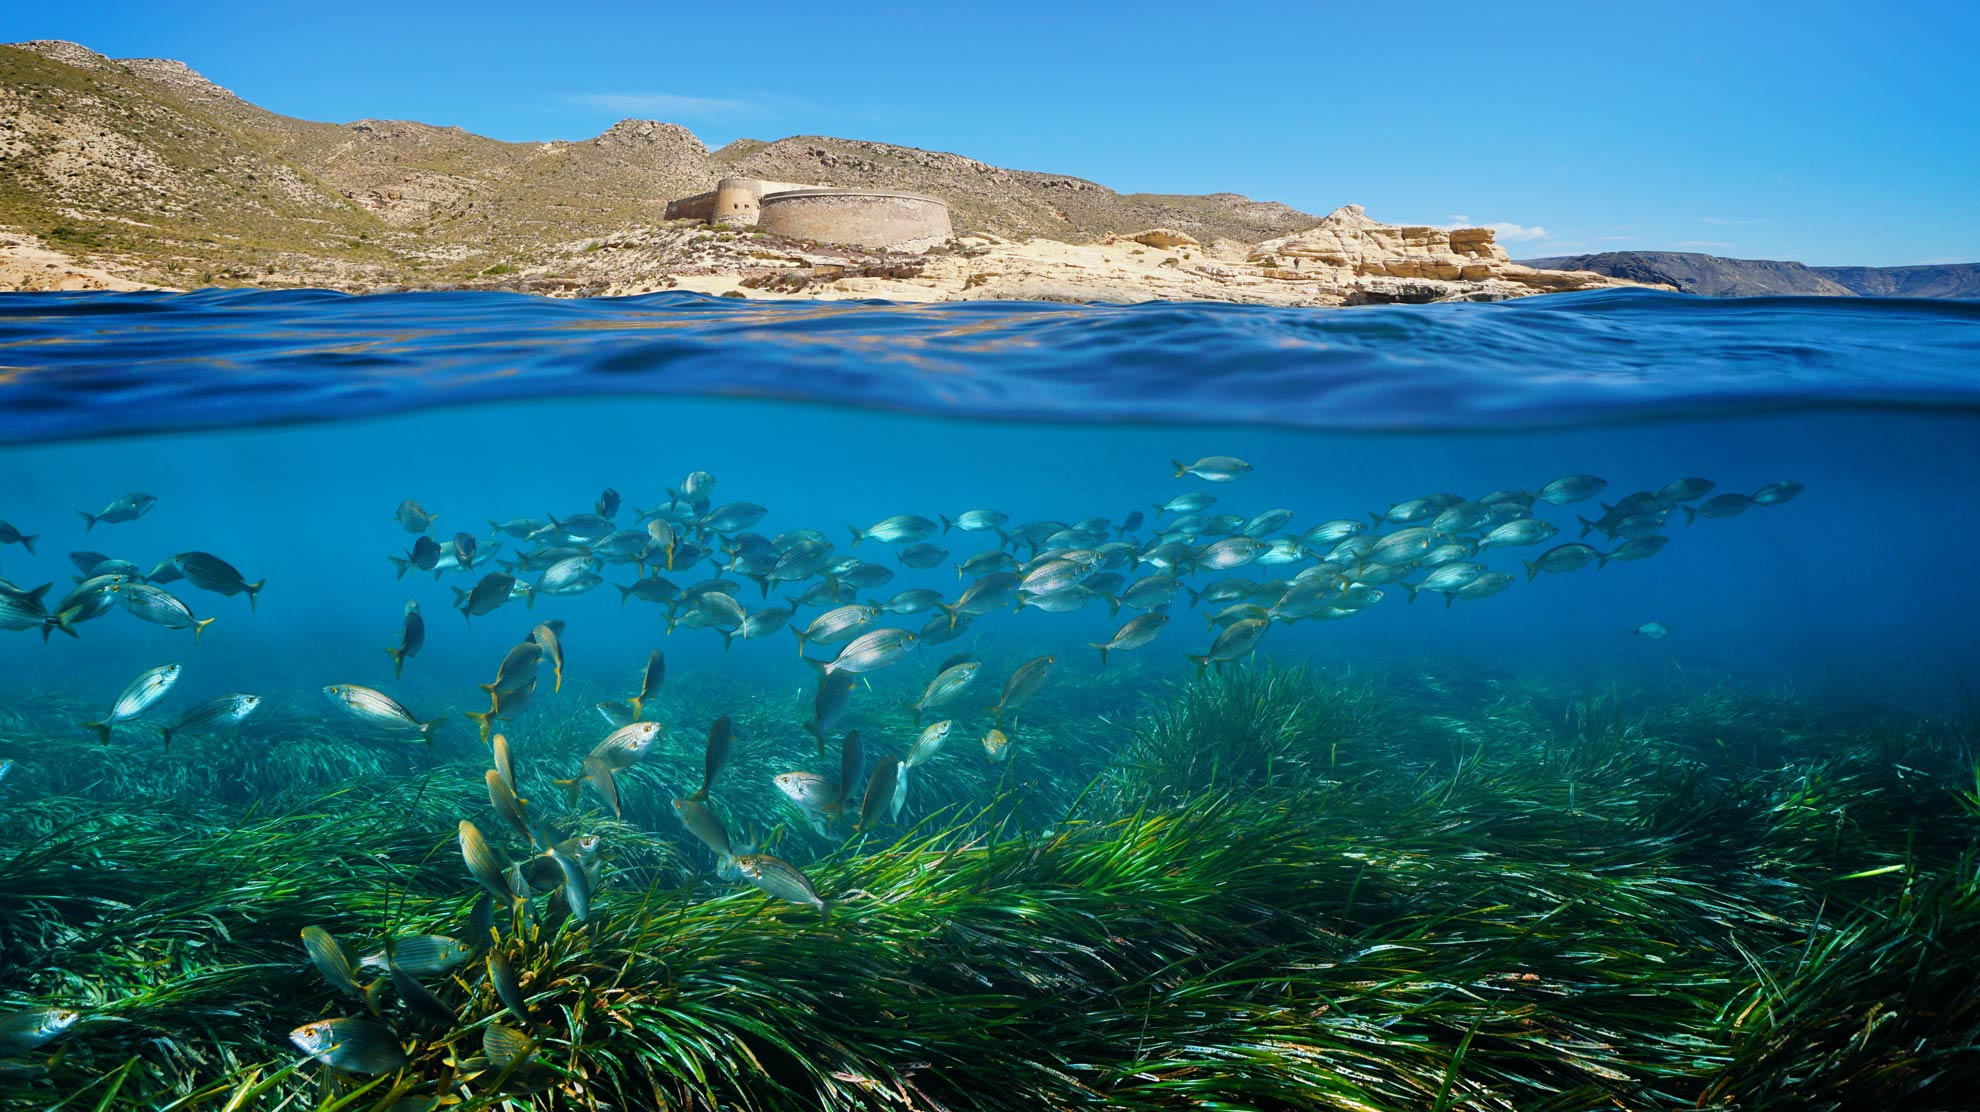 Seagrass helps tidy up plastic from Mediterranean Sea